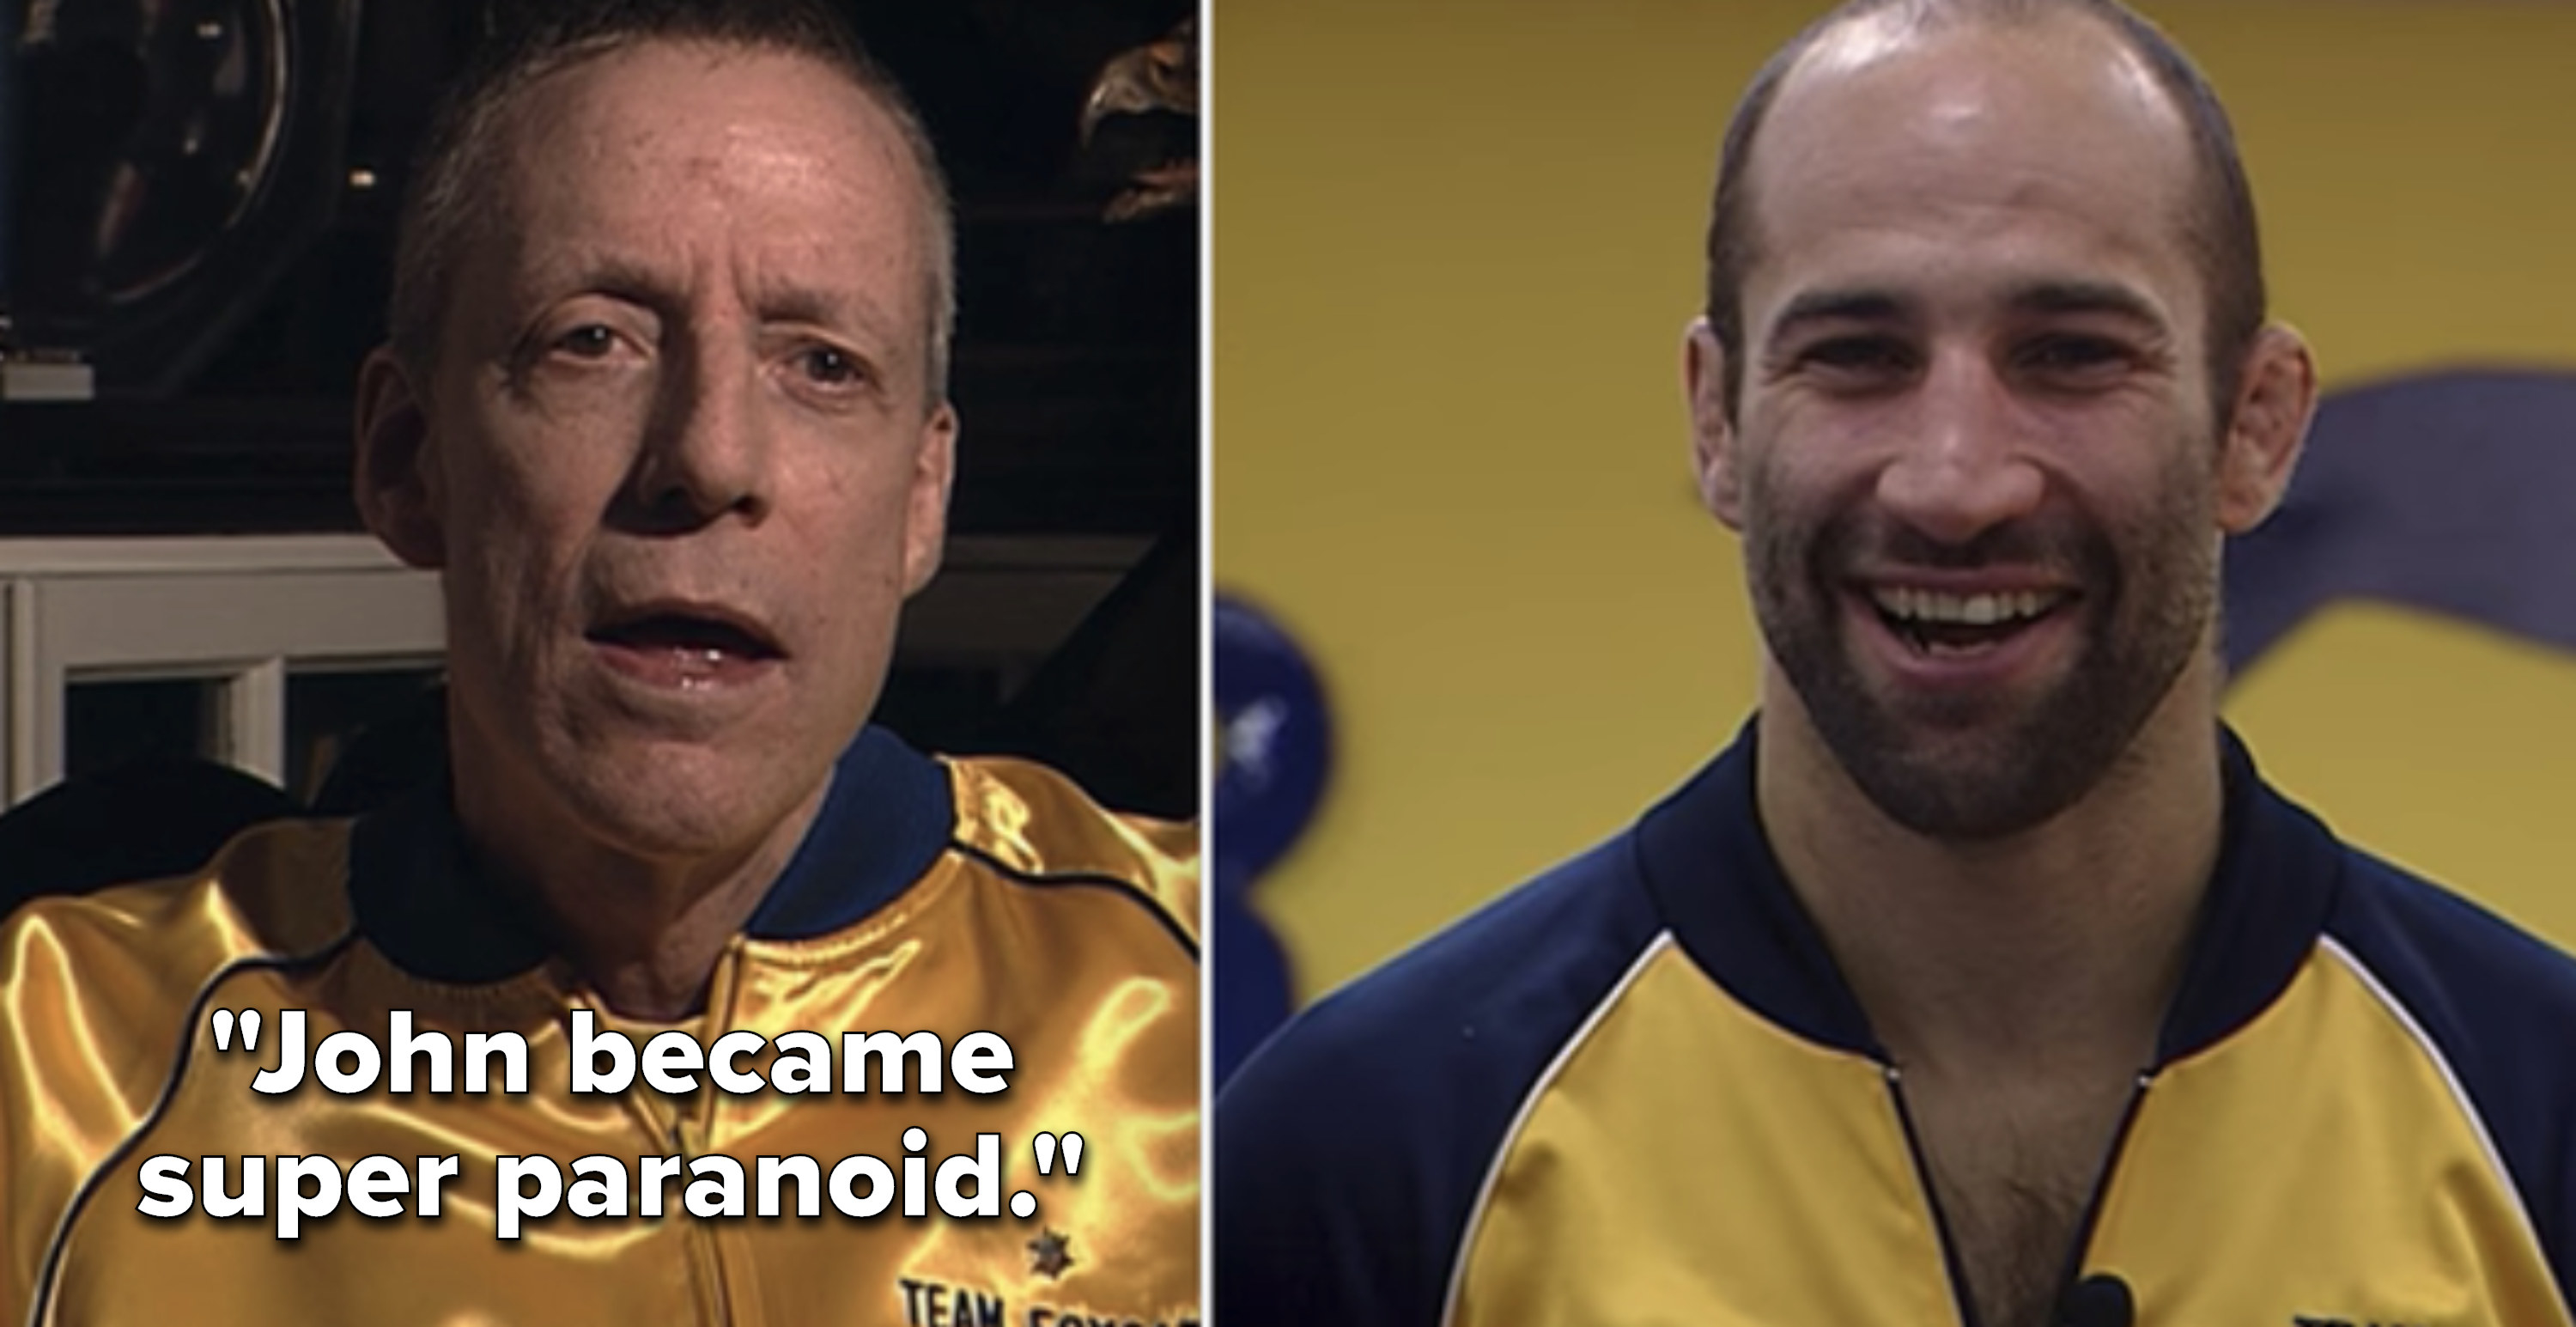 Side-by-side fo John du Pont and Dave Schultz in their wrestling team jackets